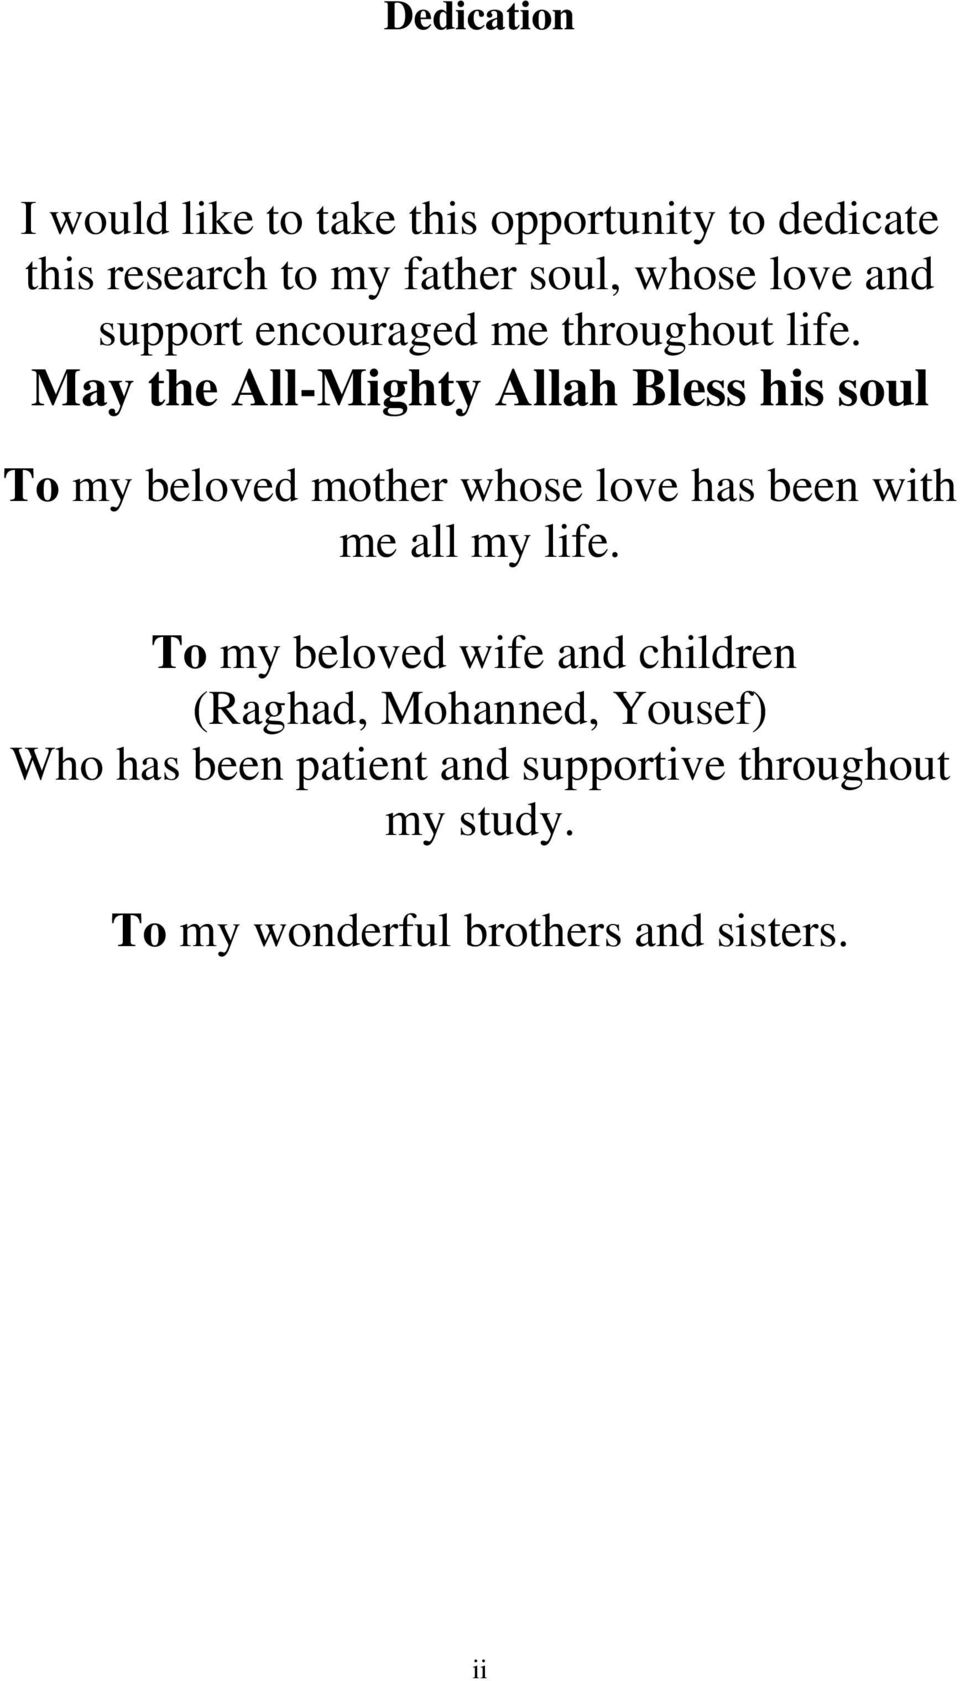 May the All-Mighty Allah Bless his soul To my beloved mother whose love has been with me all my life.